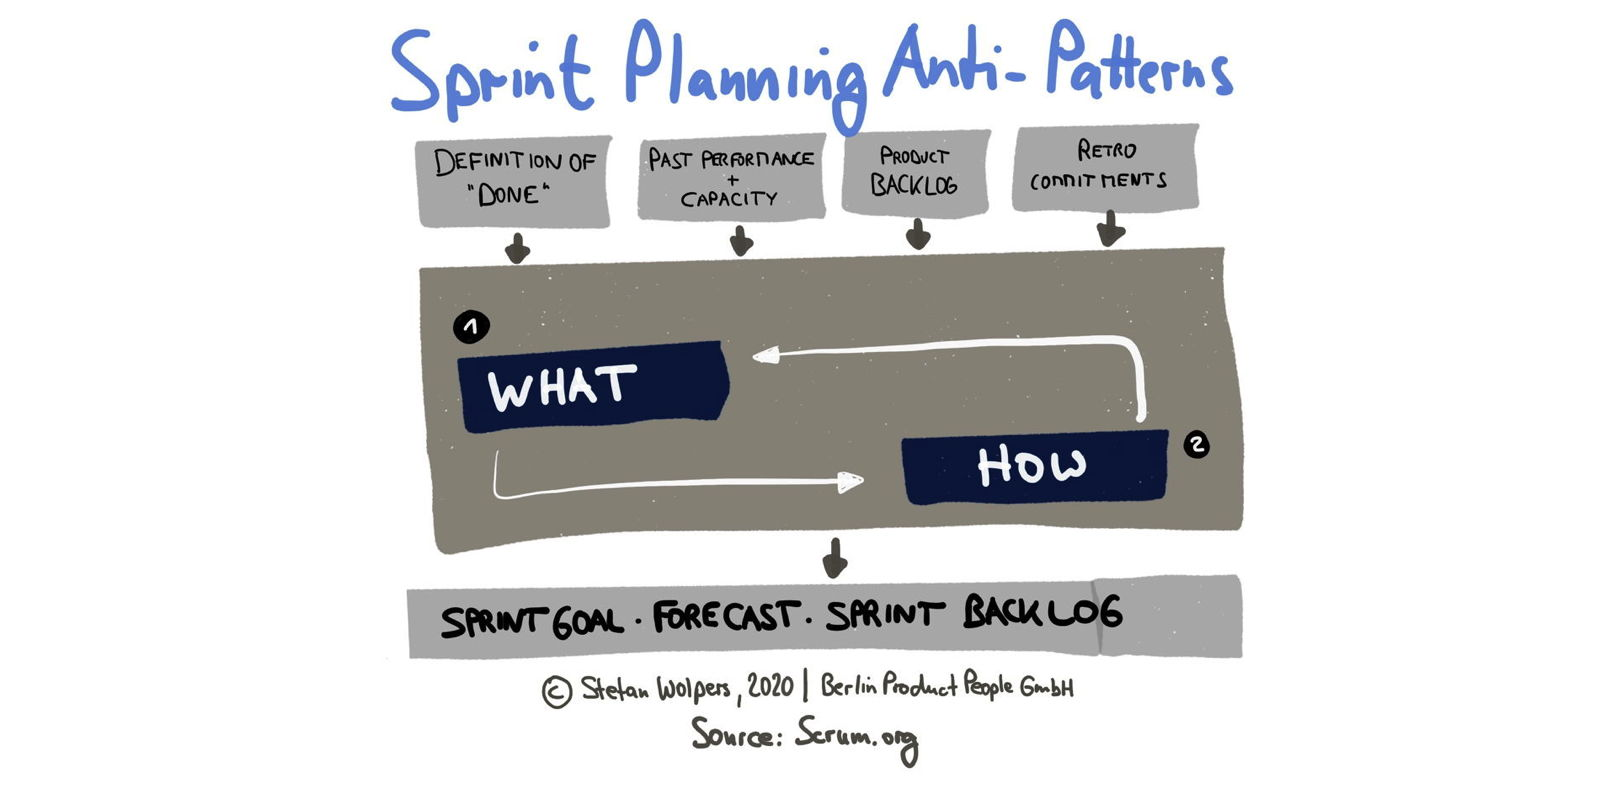 20 Sprint Planning Anti-Patterns